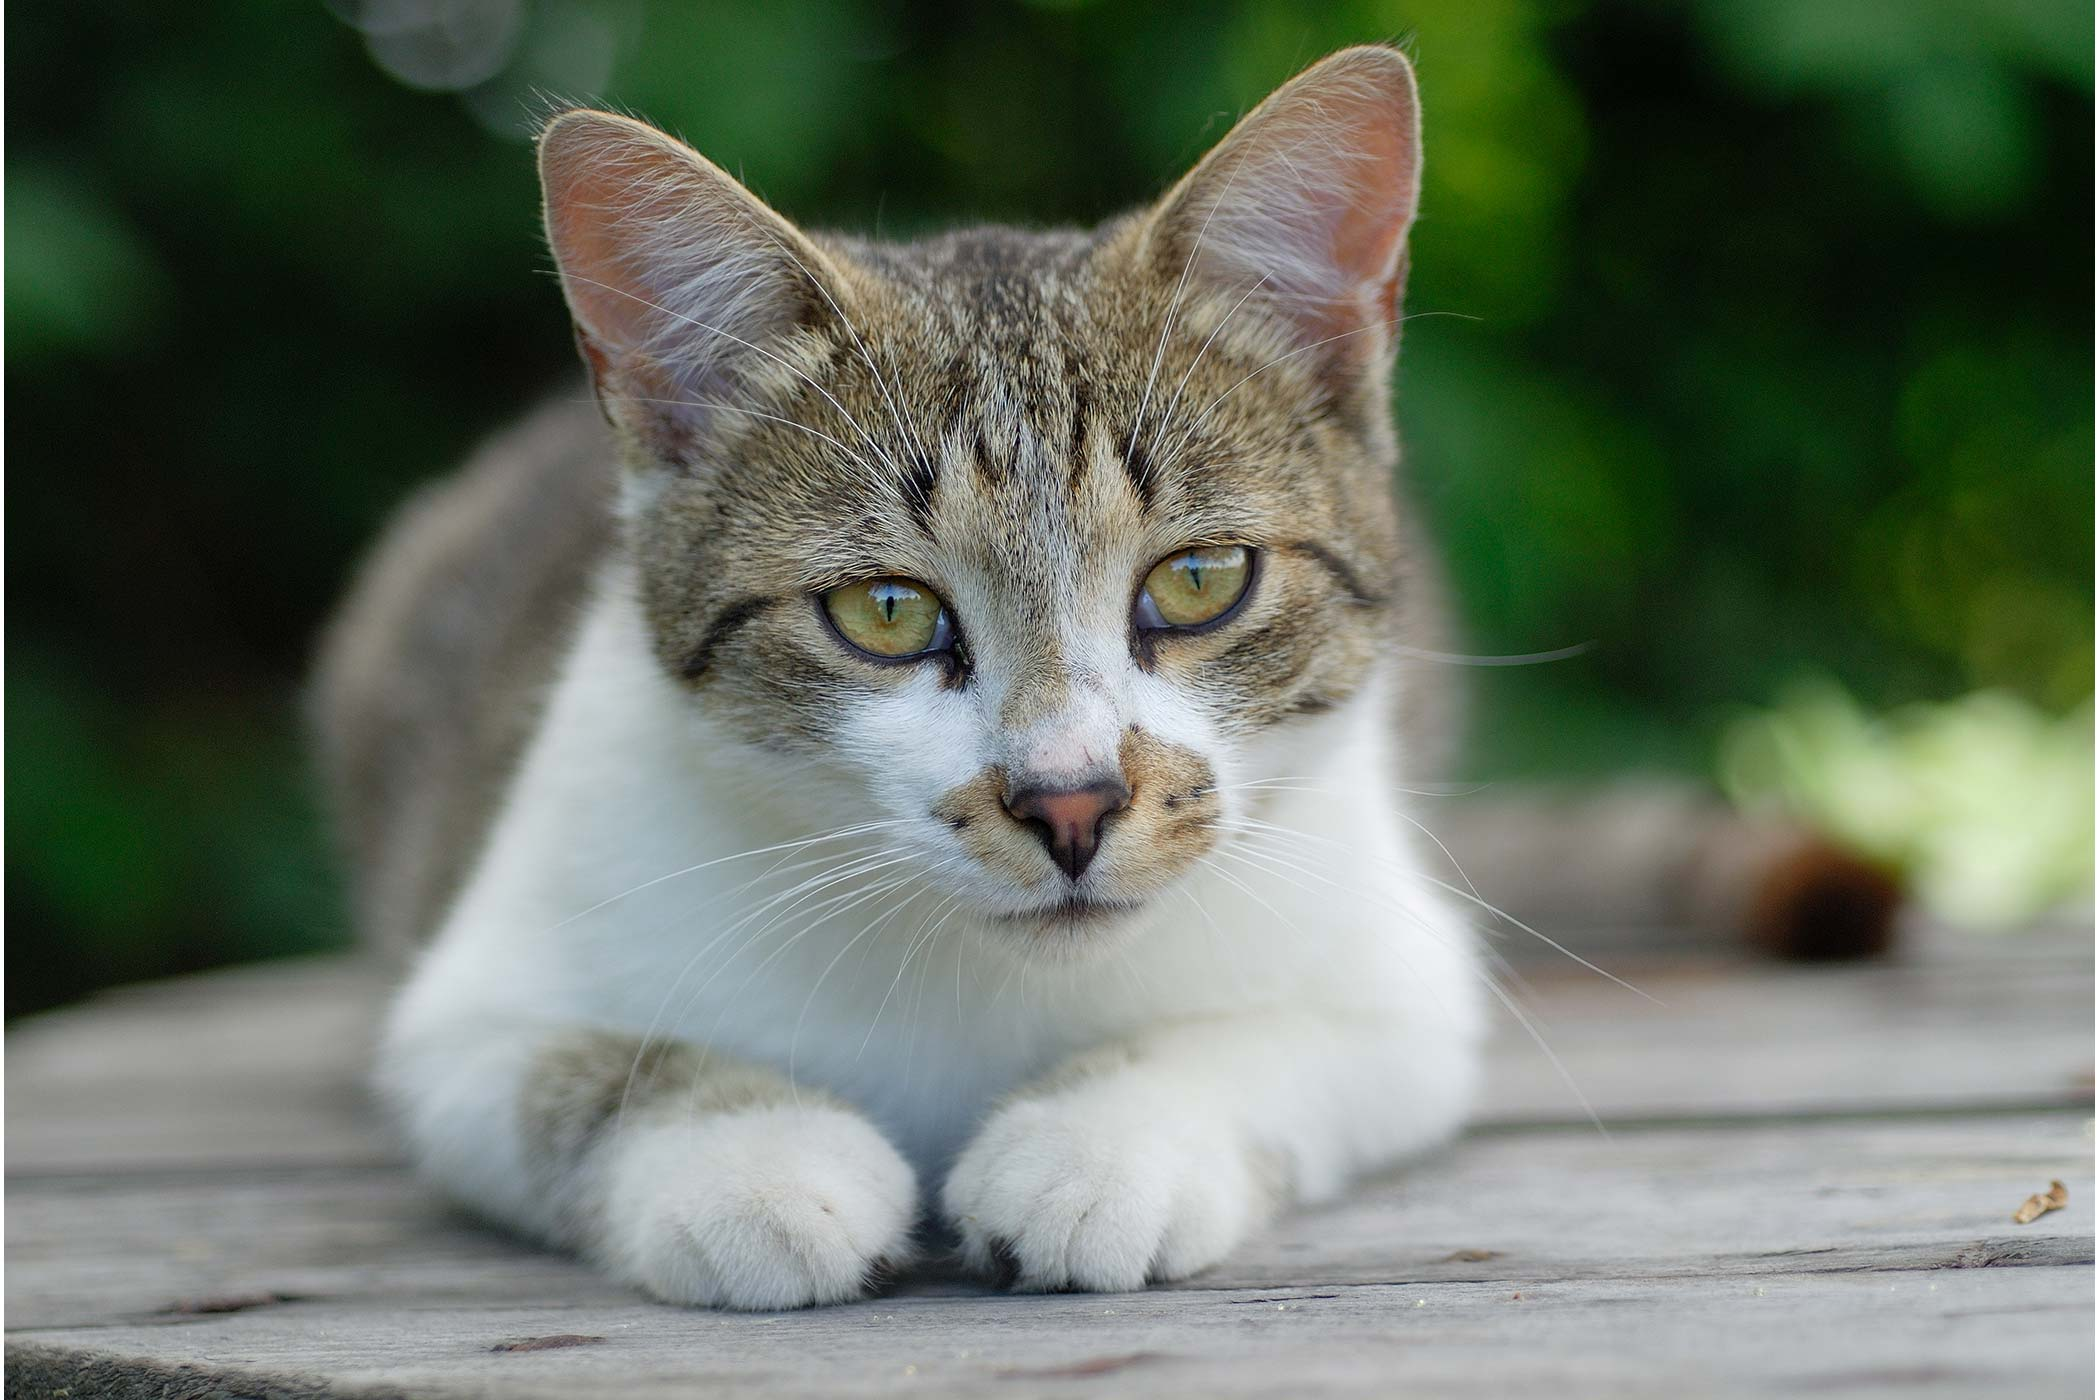 Cancer of the Uterus in Cats